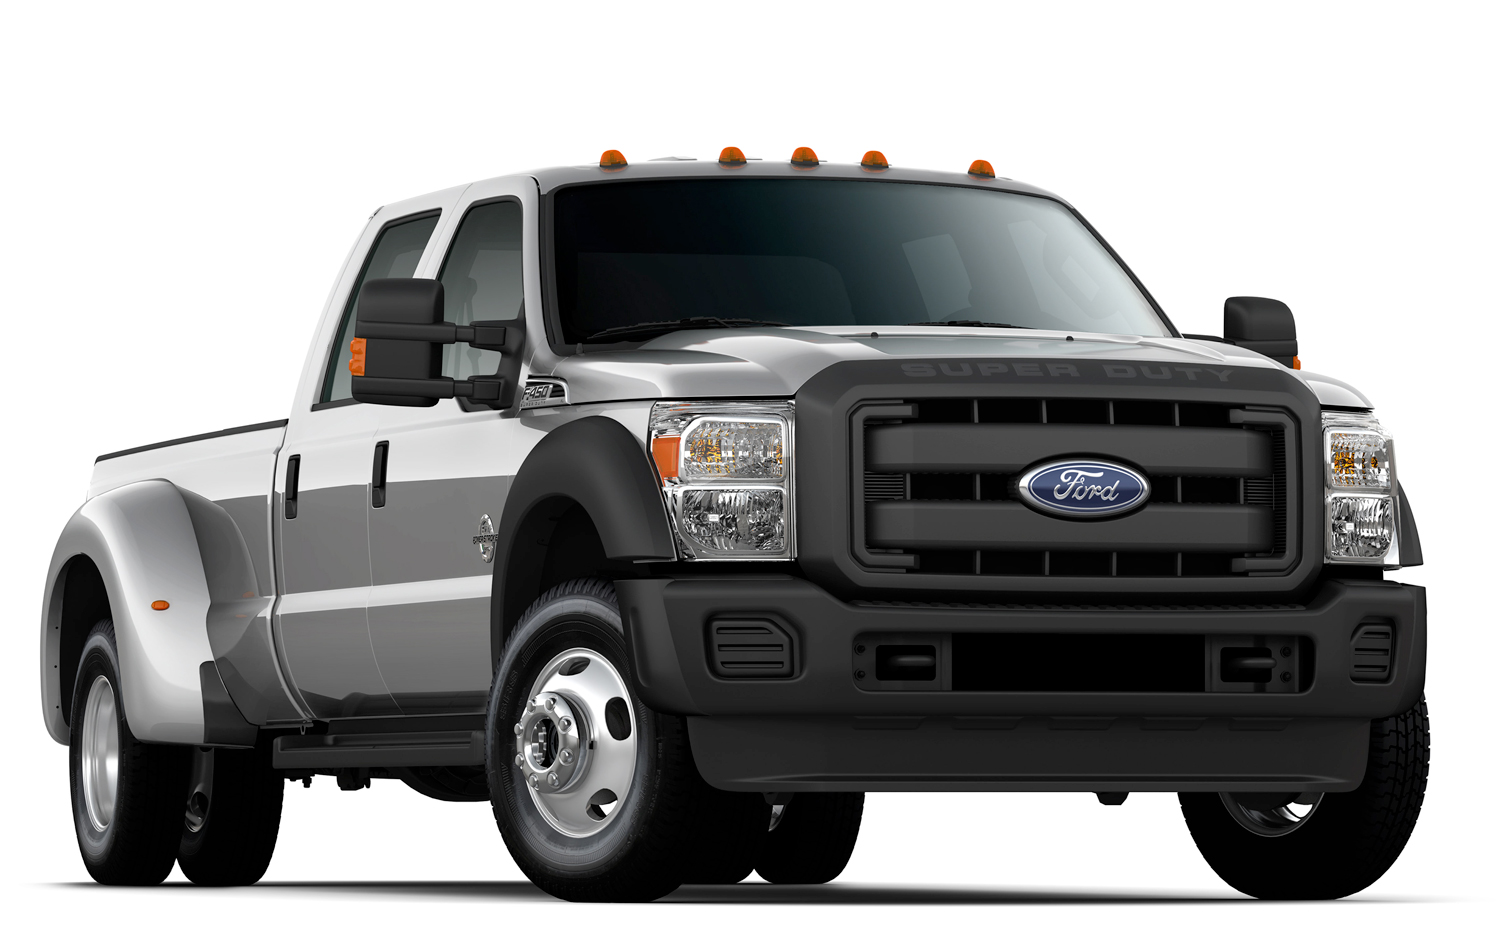 Ford Super Duty >> 2011 FORD F-450 SUPER DUTY - Image #15